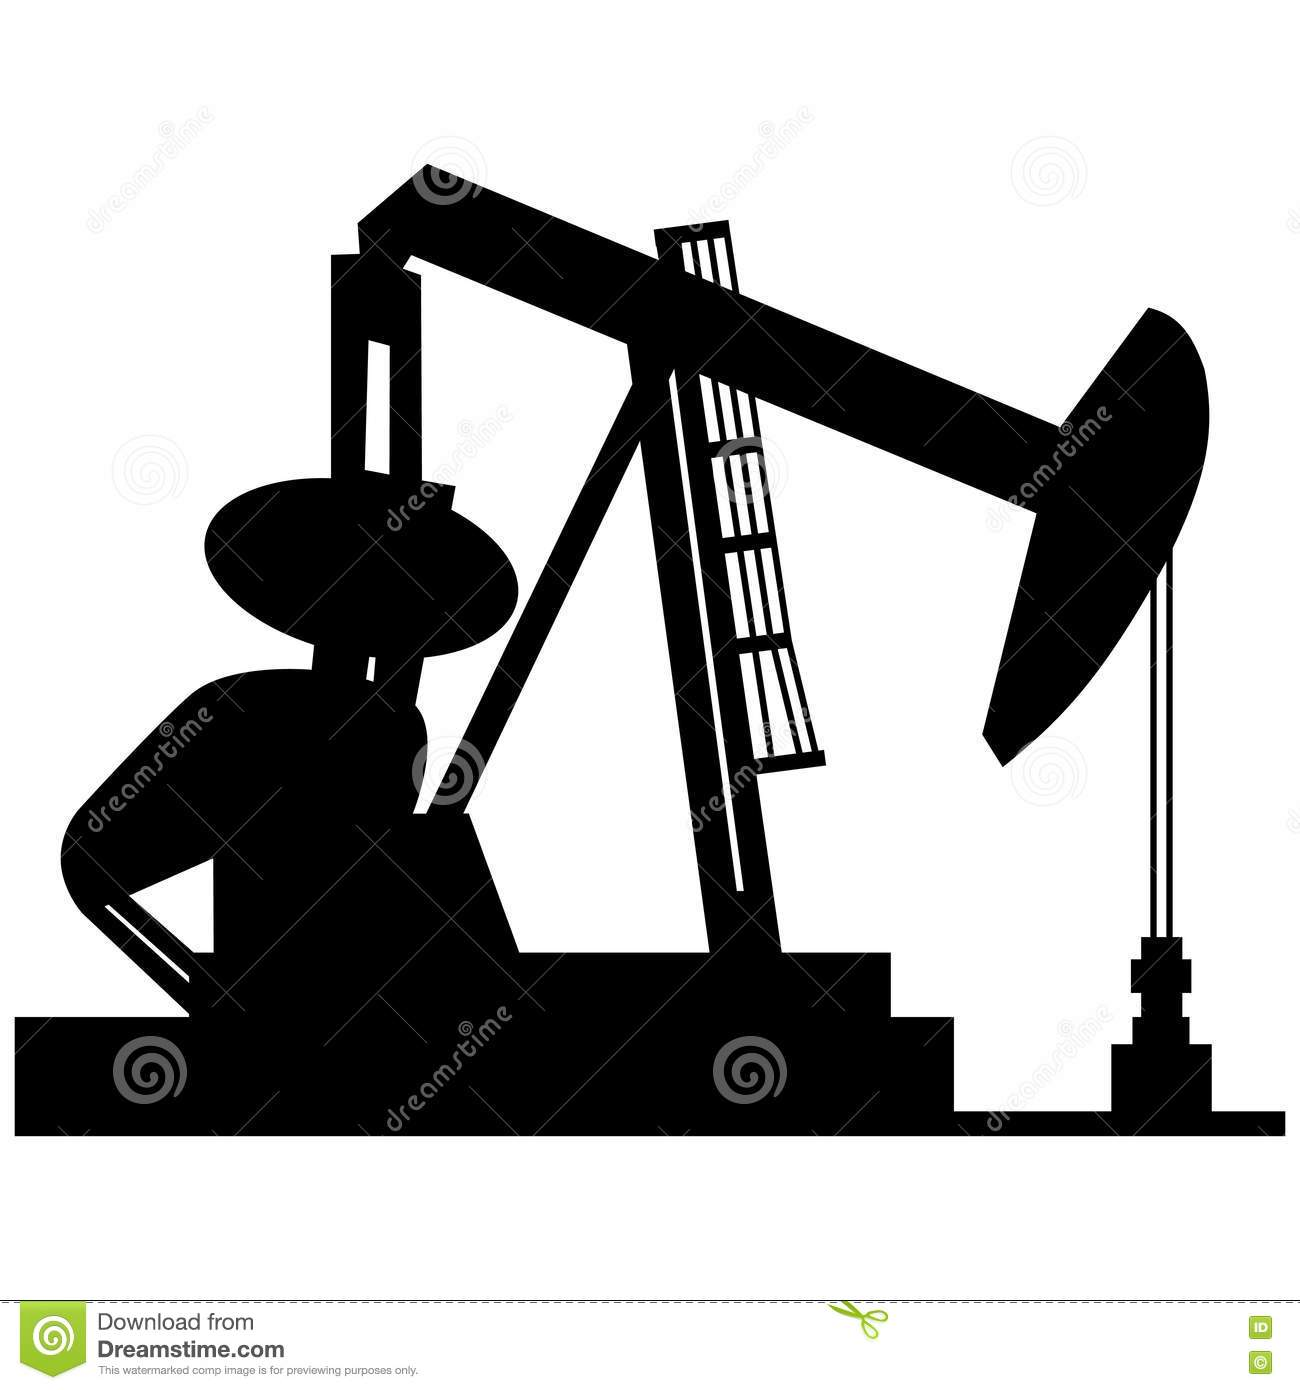 z rig diagram tvss wiring fracking cartoons illustrations and vector stock images